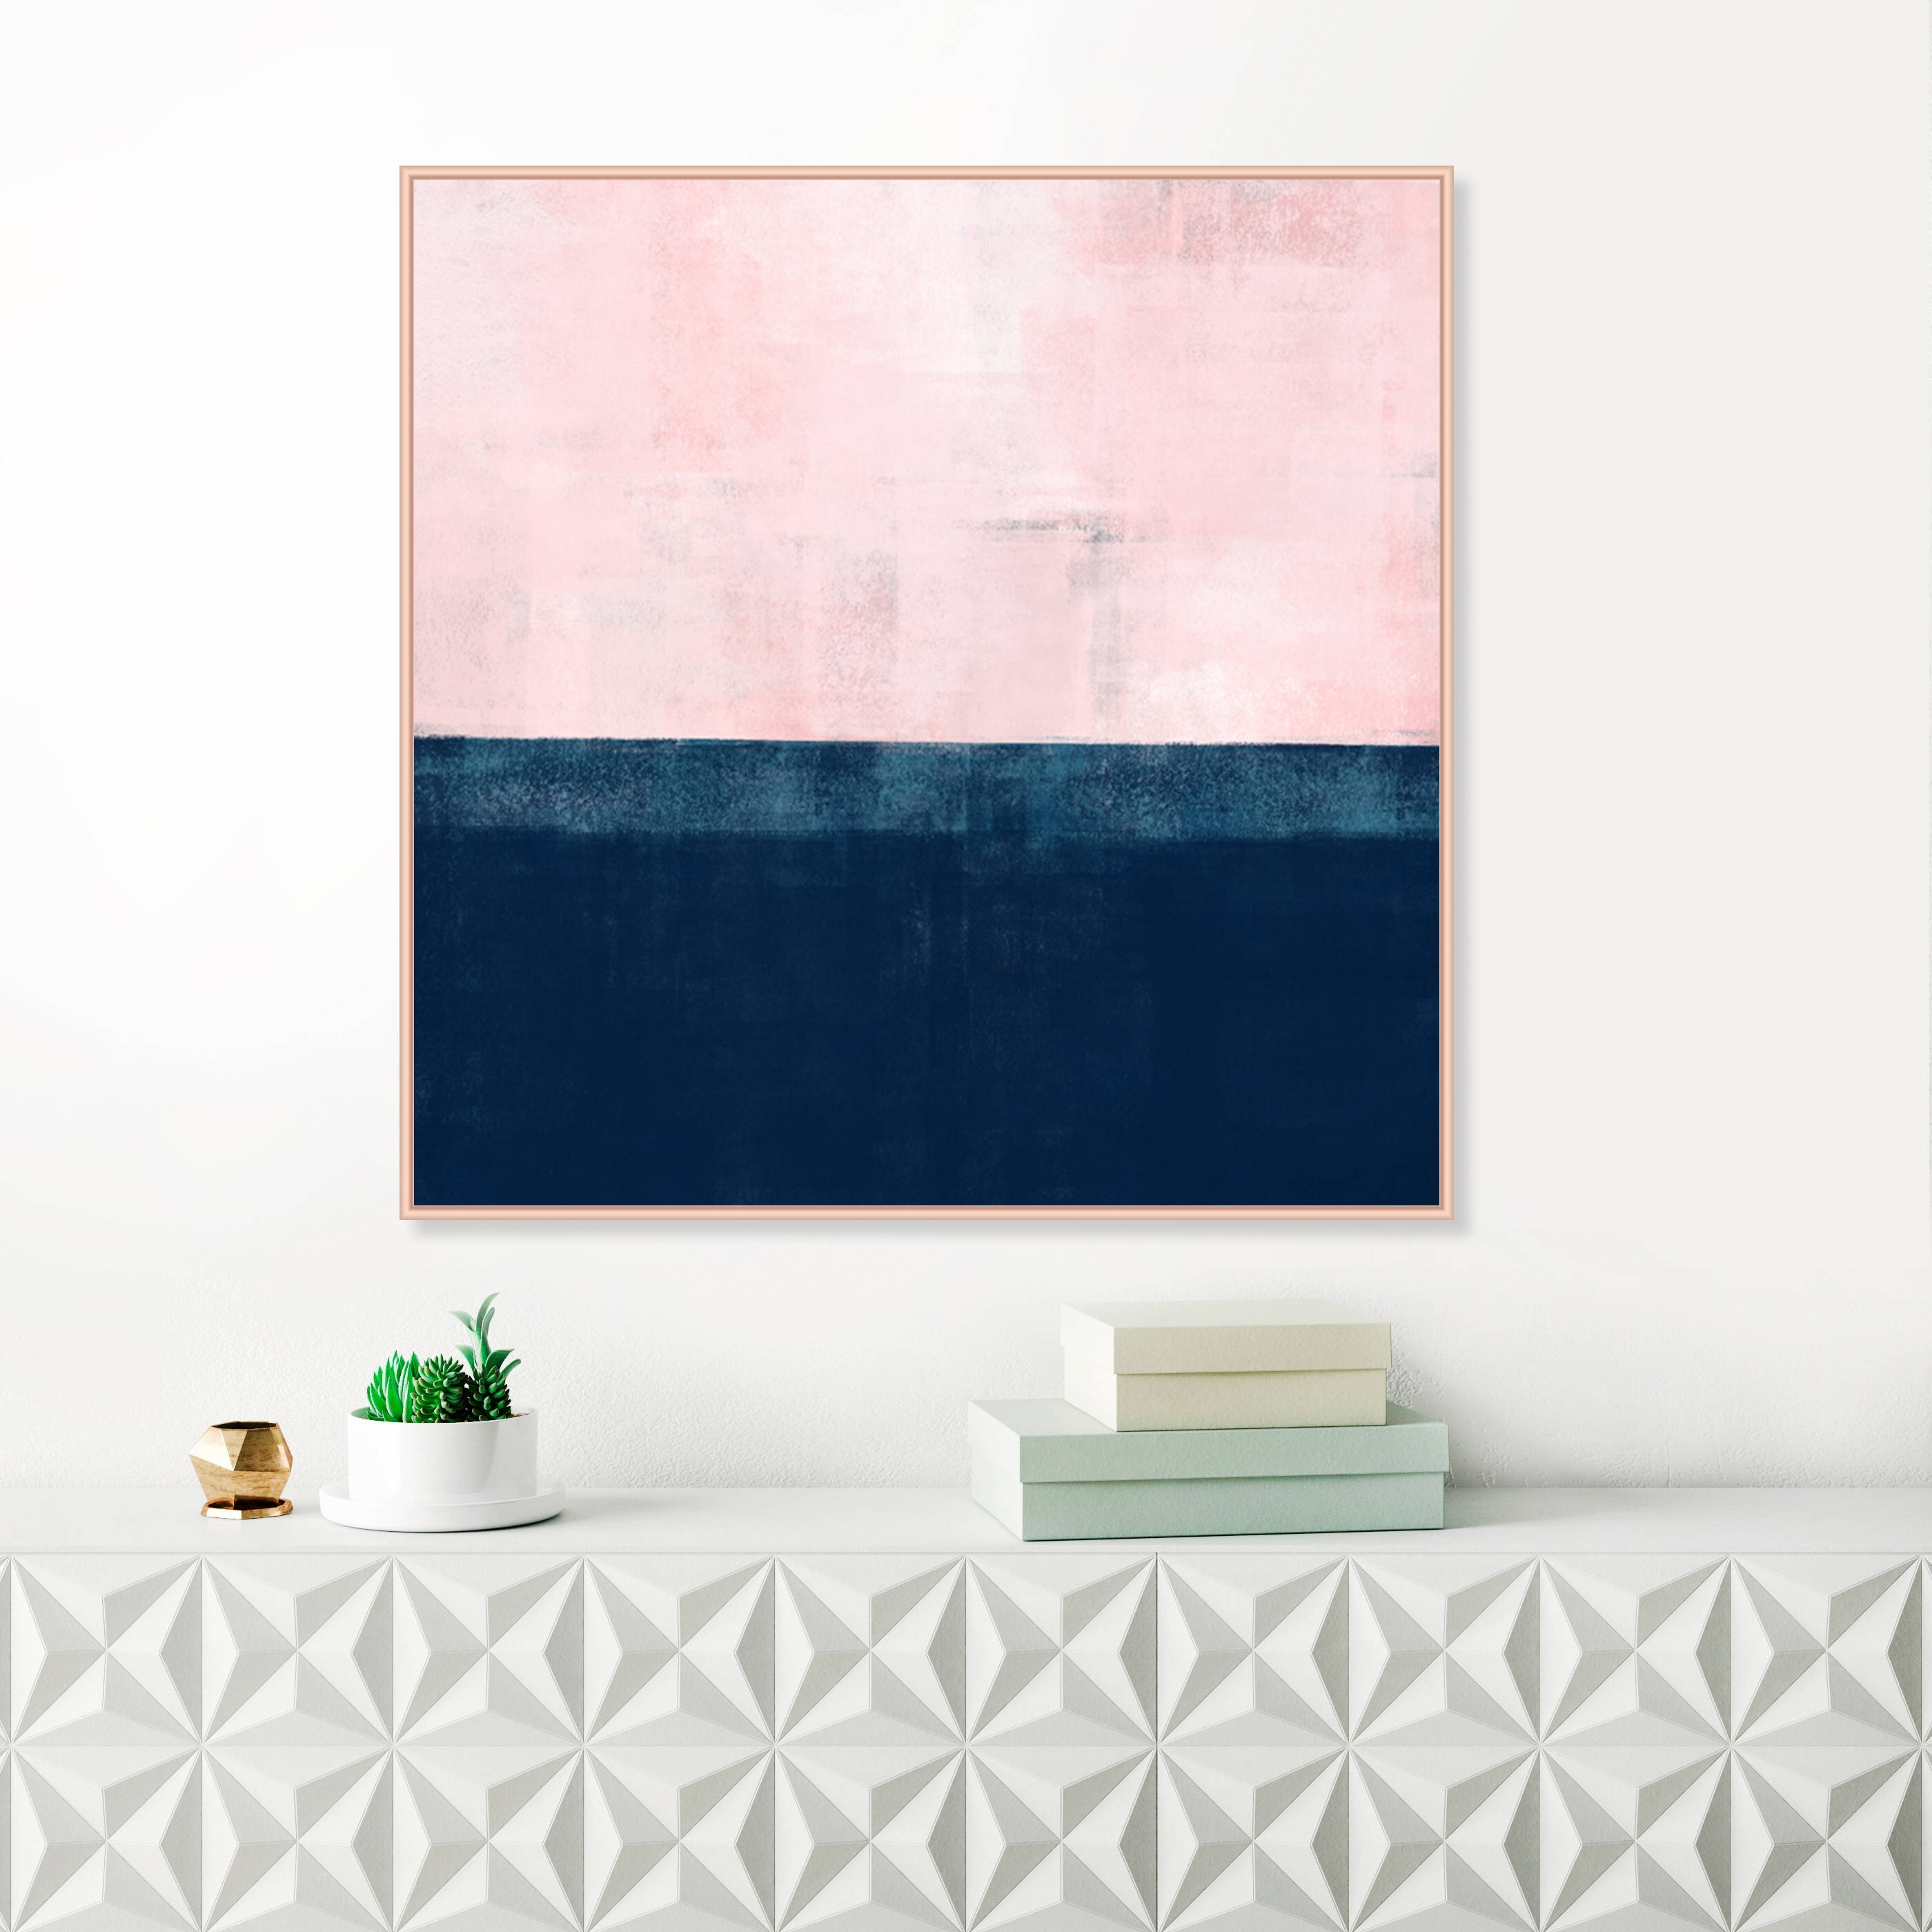 Pink And Navy Blue Abstract Art, Pink Wall Art, Pink Painting In Best And Newest Pink Abstract Wall Art (View 17 of 20)